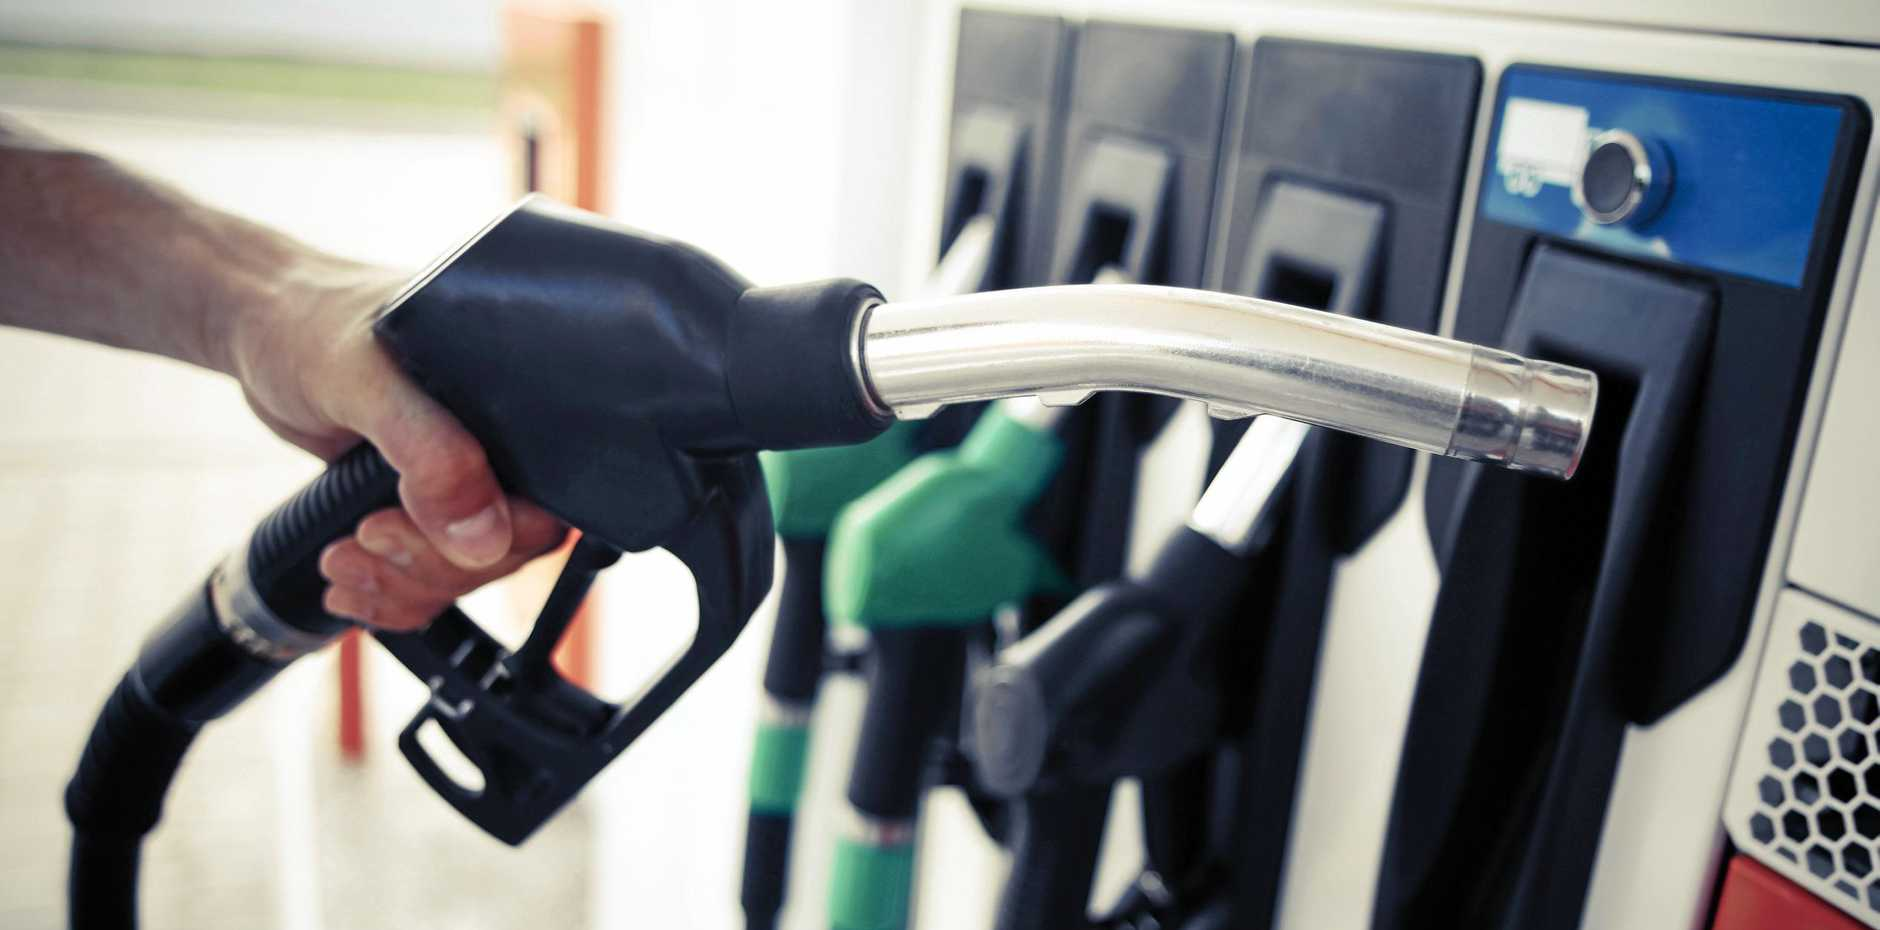 FAIR PRICES: A Broadwater petrol station has decided to drop its prices to being